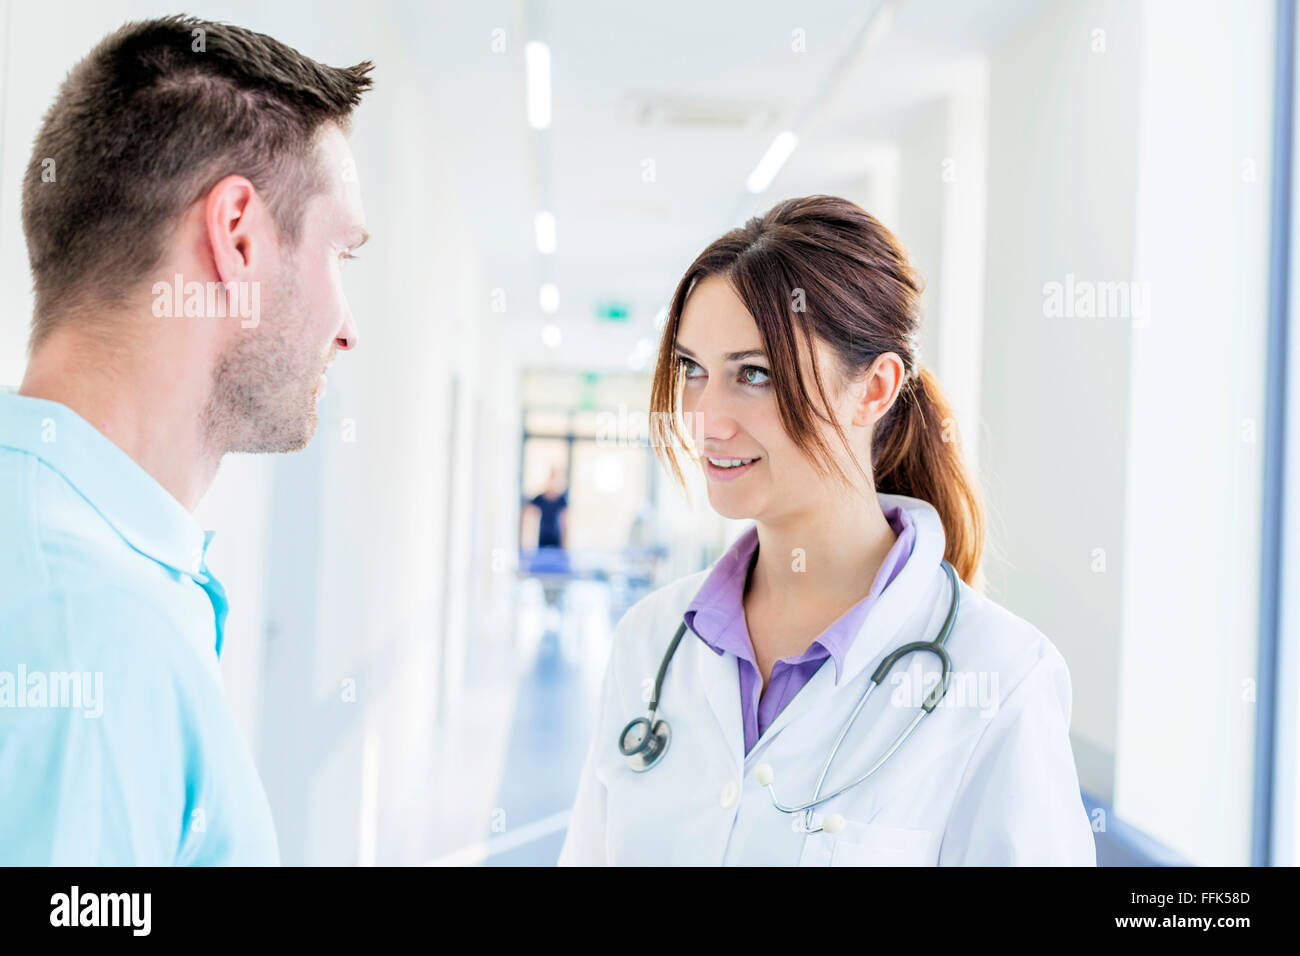 Male and female doctor talking in hospital corridor - Stock Image